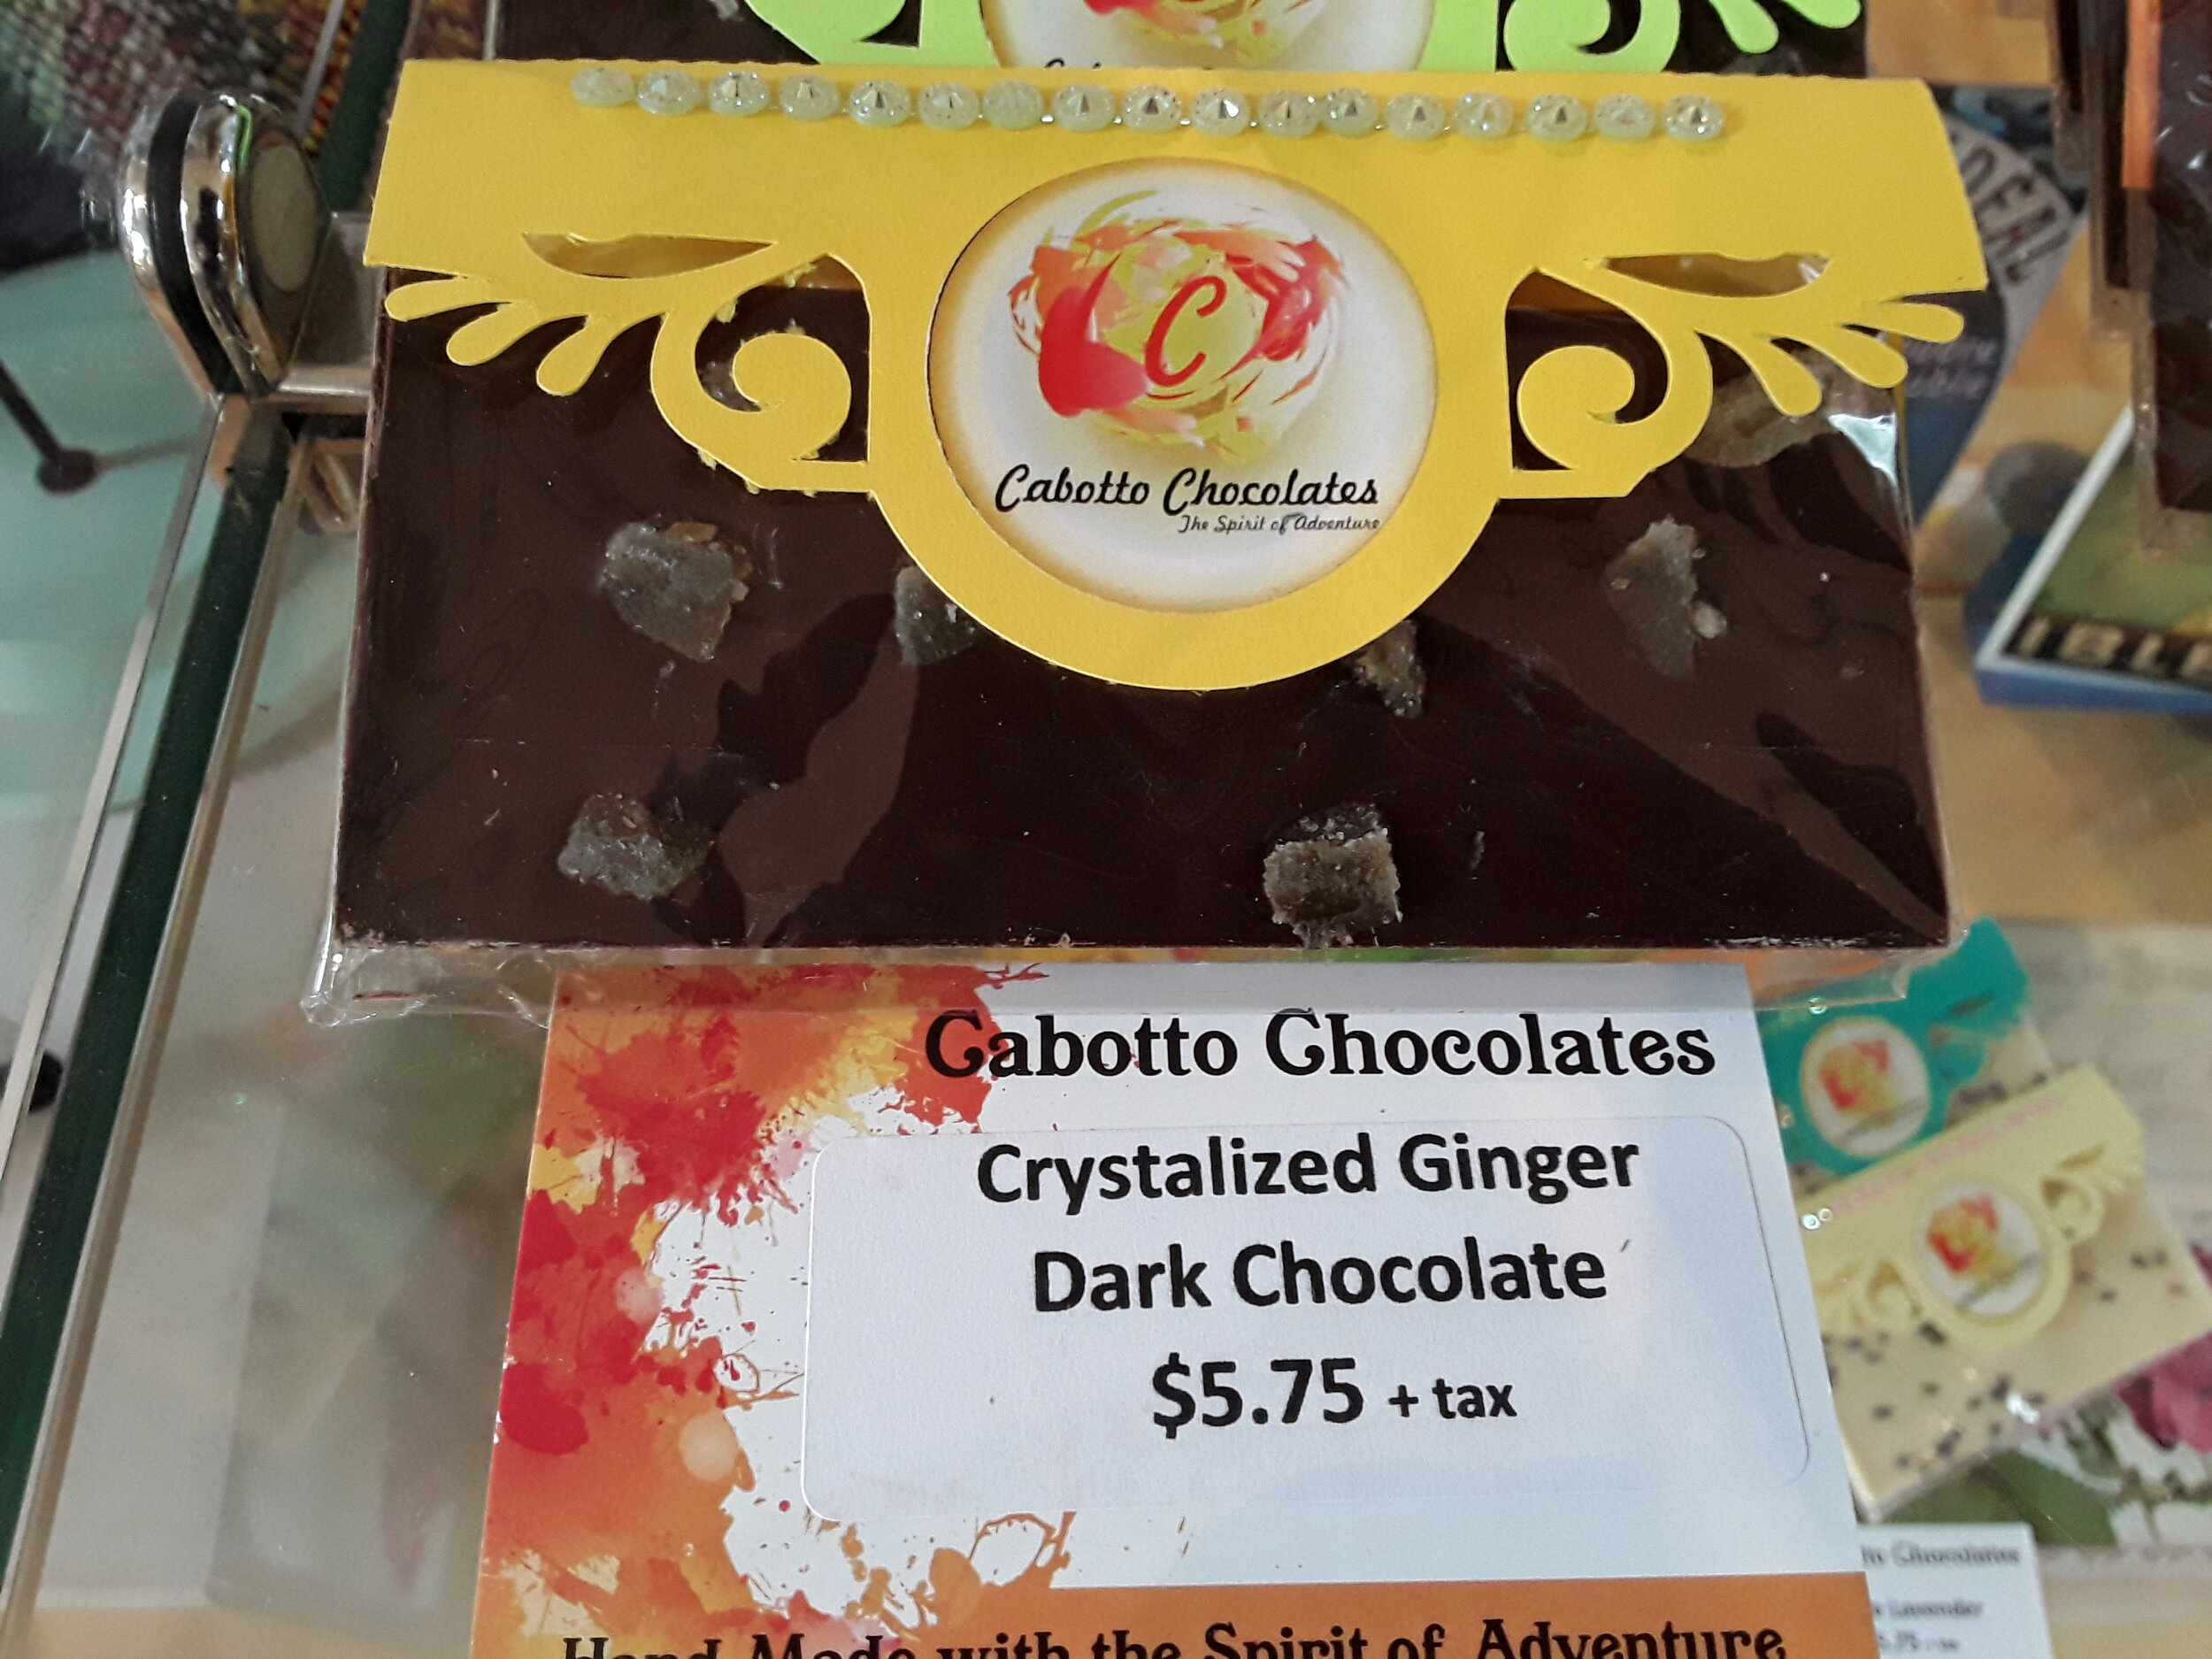 Crystalized Ginger Dark Chocolate